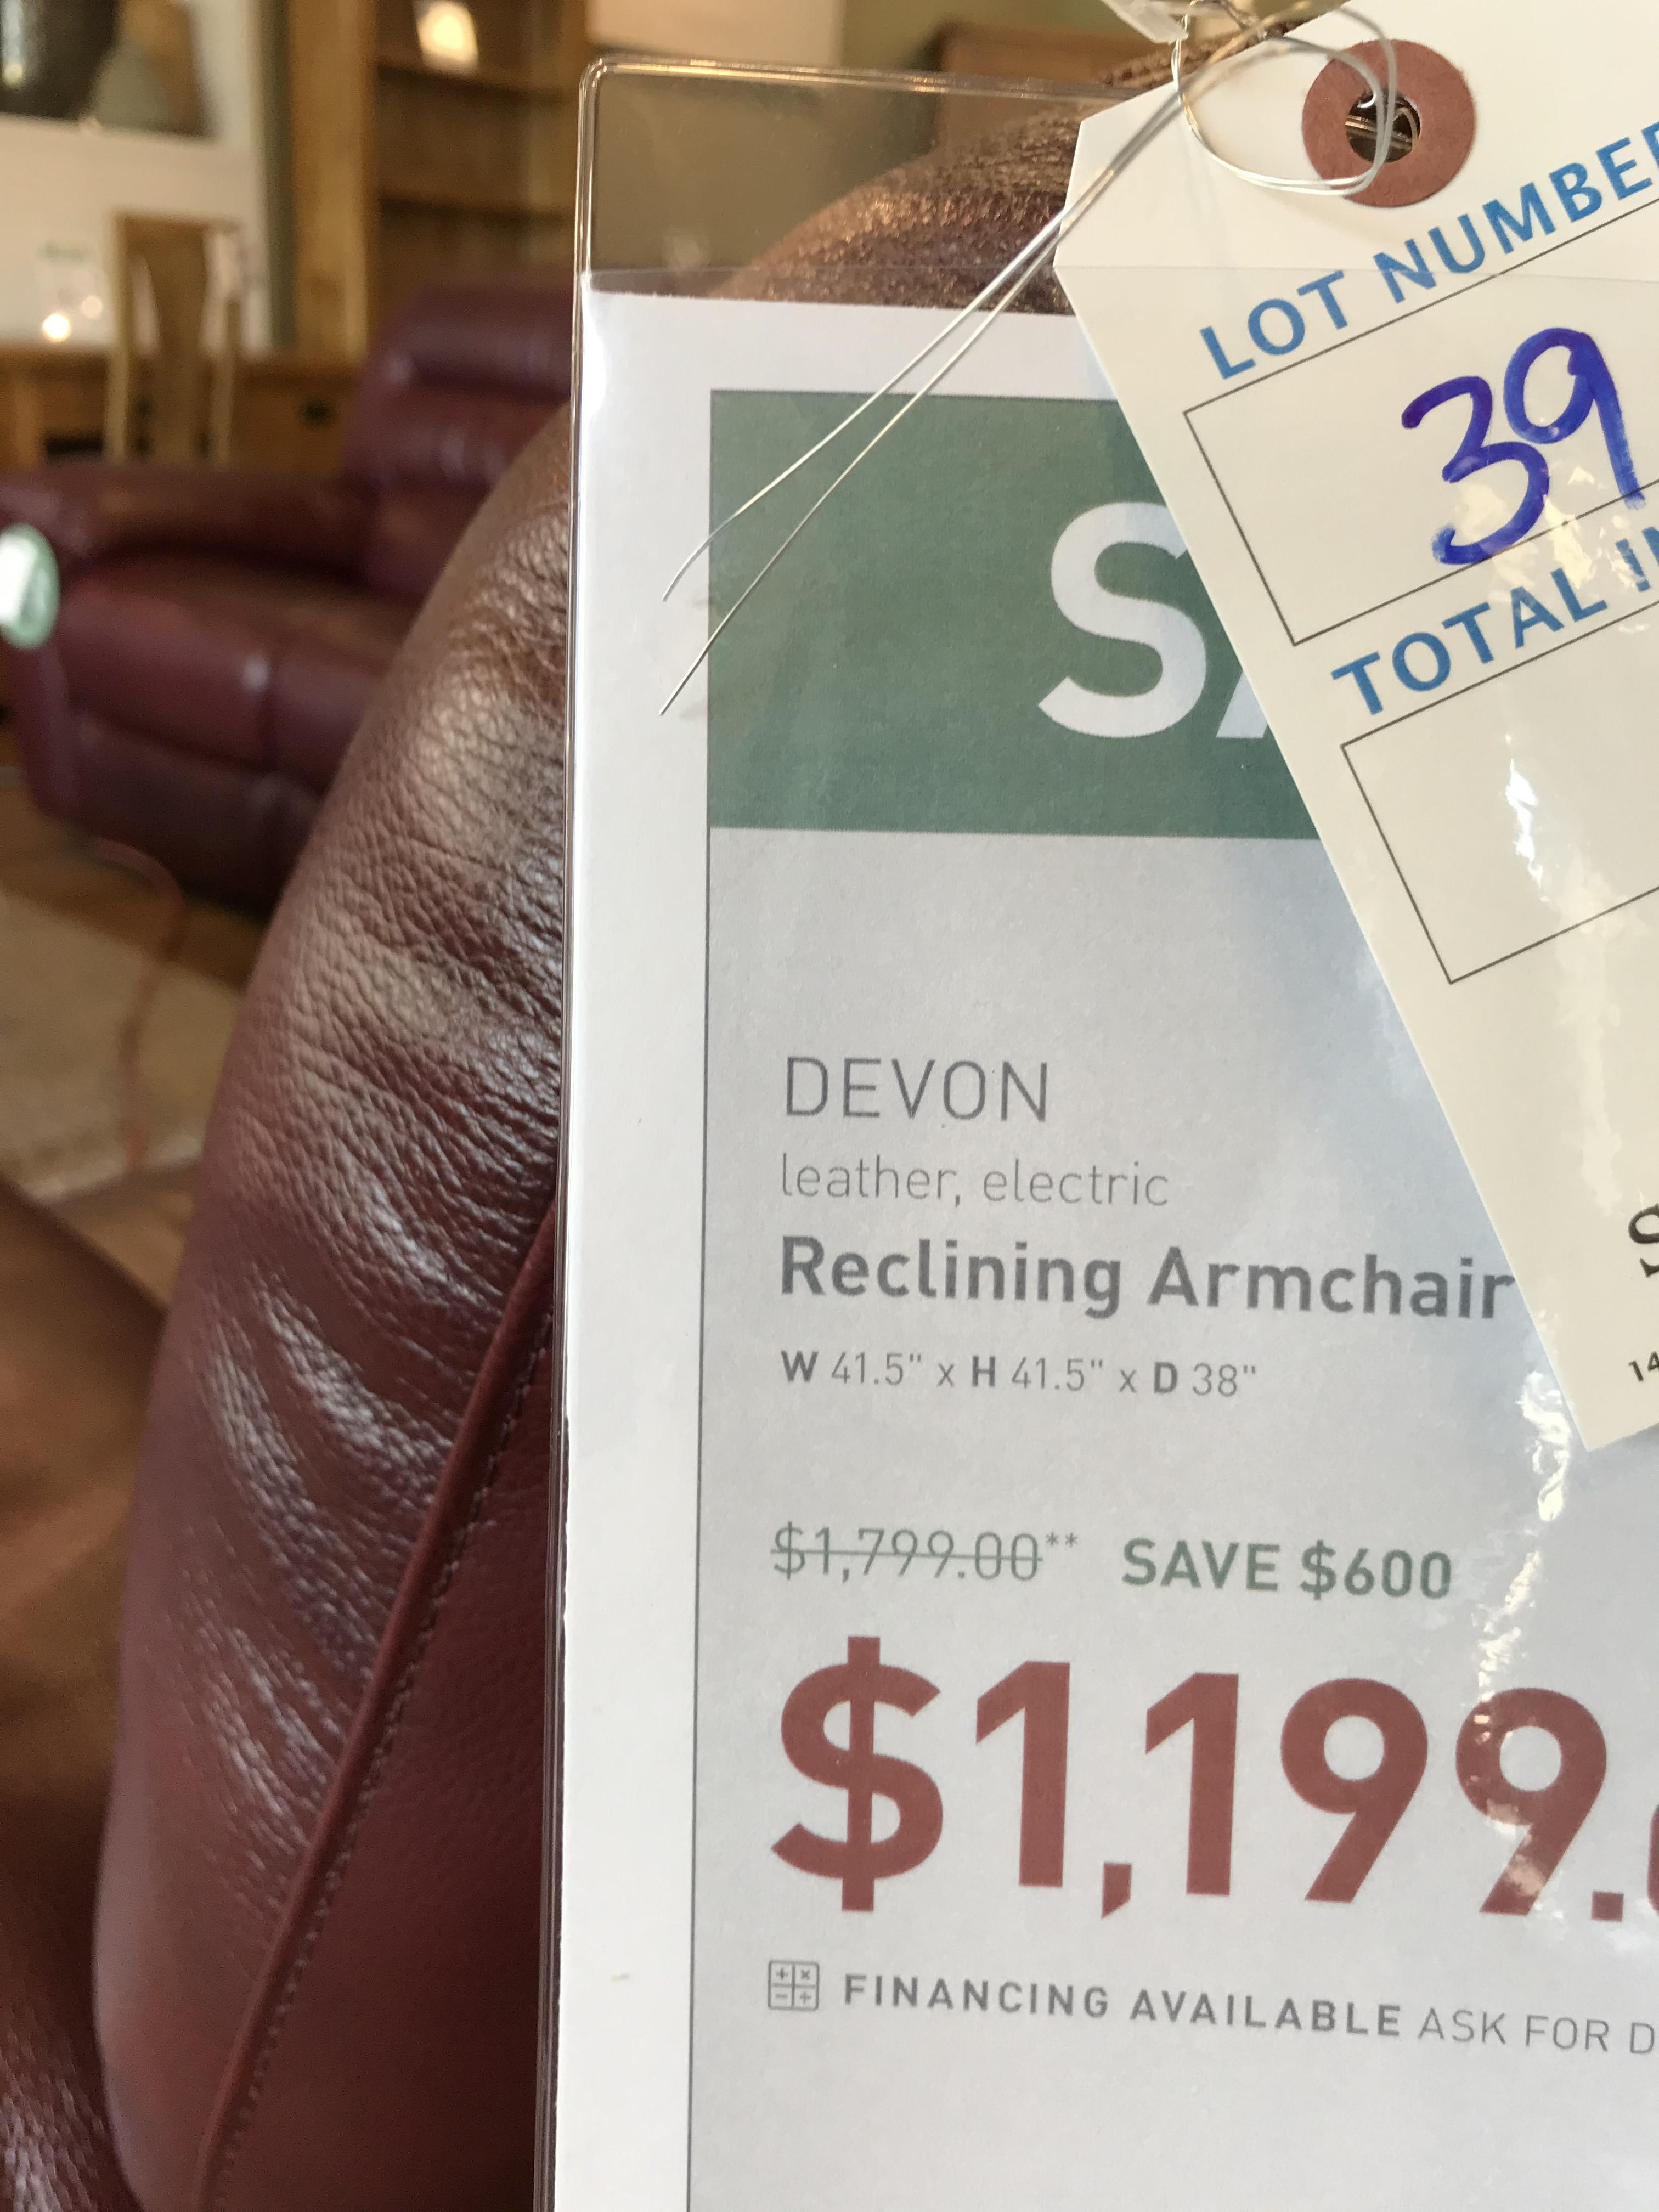 Reclining Arm Chair (Devon) See Picture For Dimensions and Product Info - Image 2 of 2